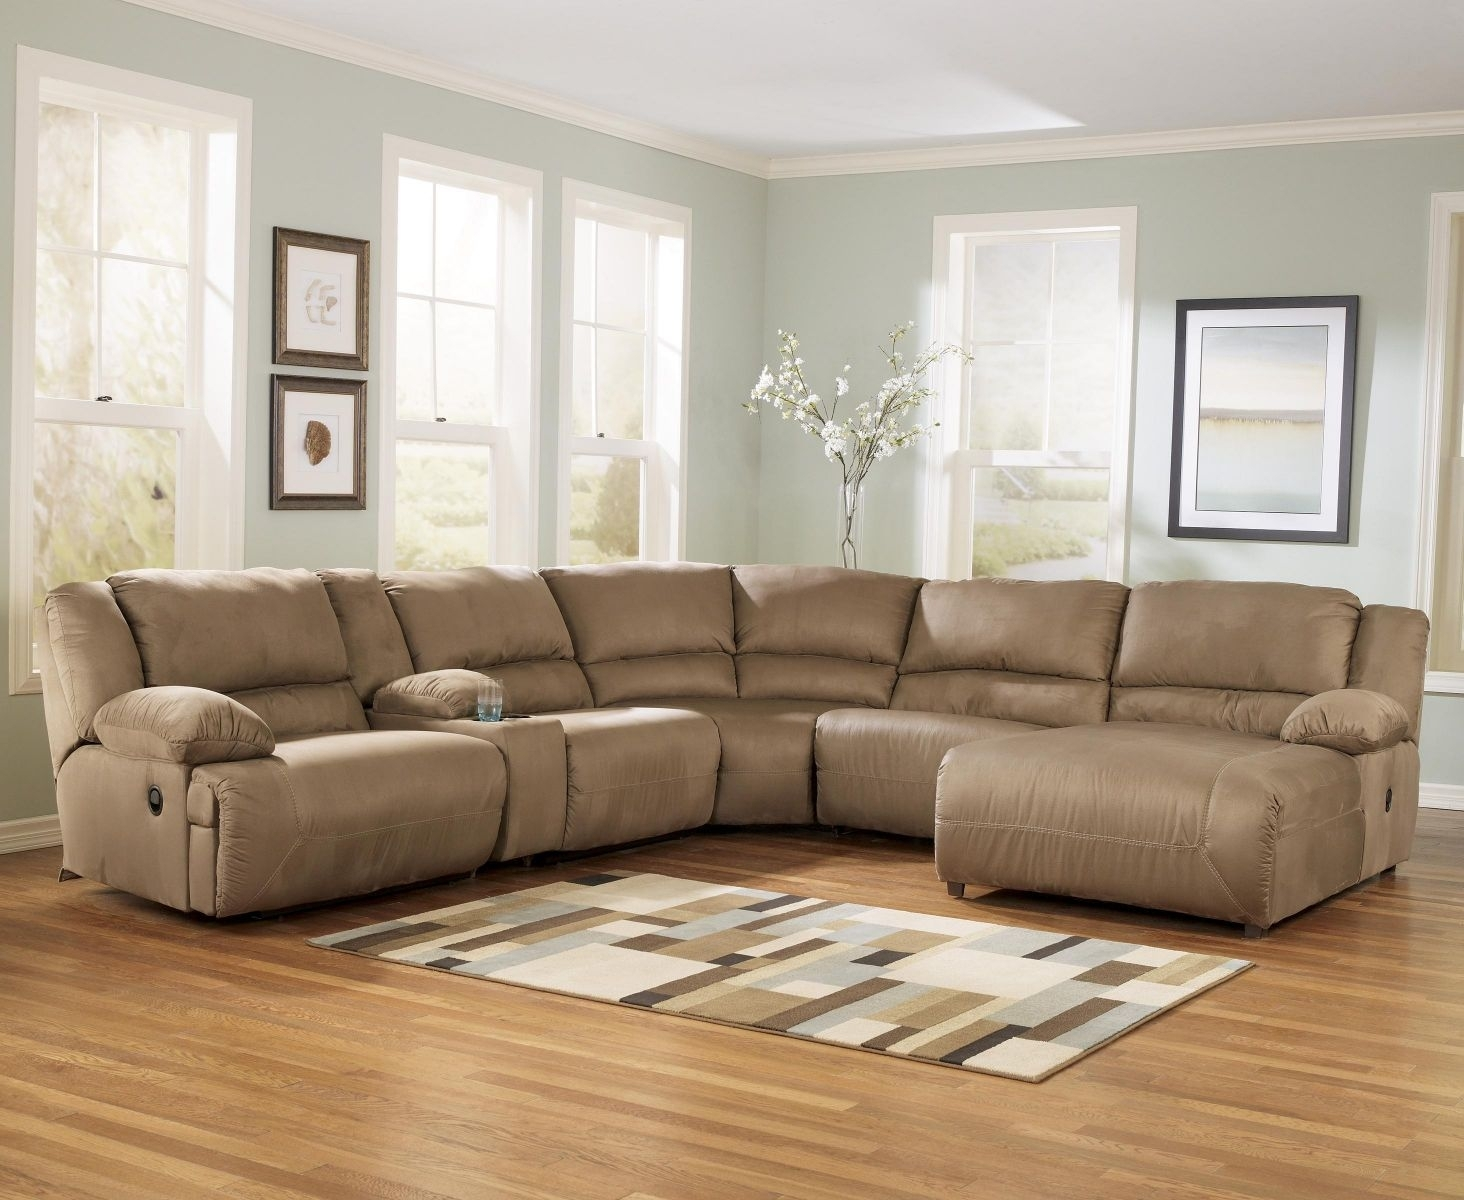 Appealing Sectional Sofa Austin Microfiber Pict Of Furniture Stores Throughout Austin Sectional Sofas (Image 1 of 10)